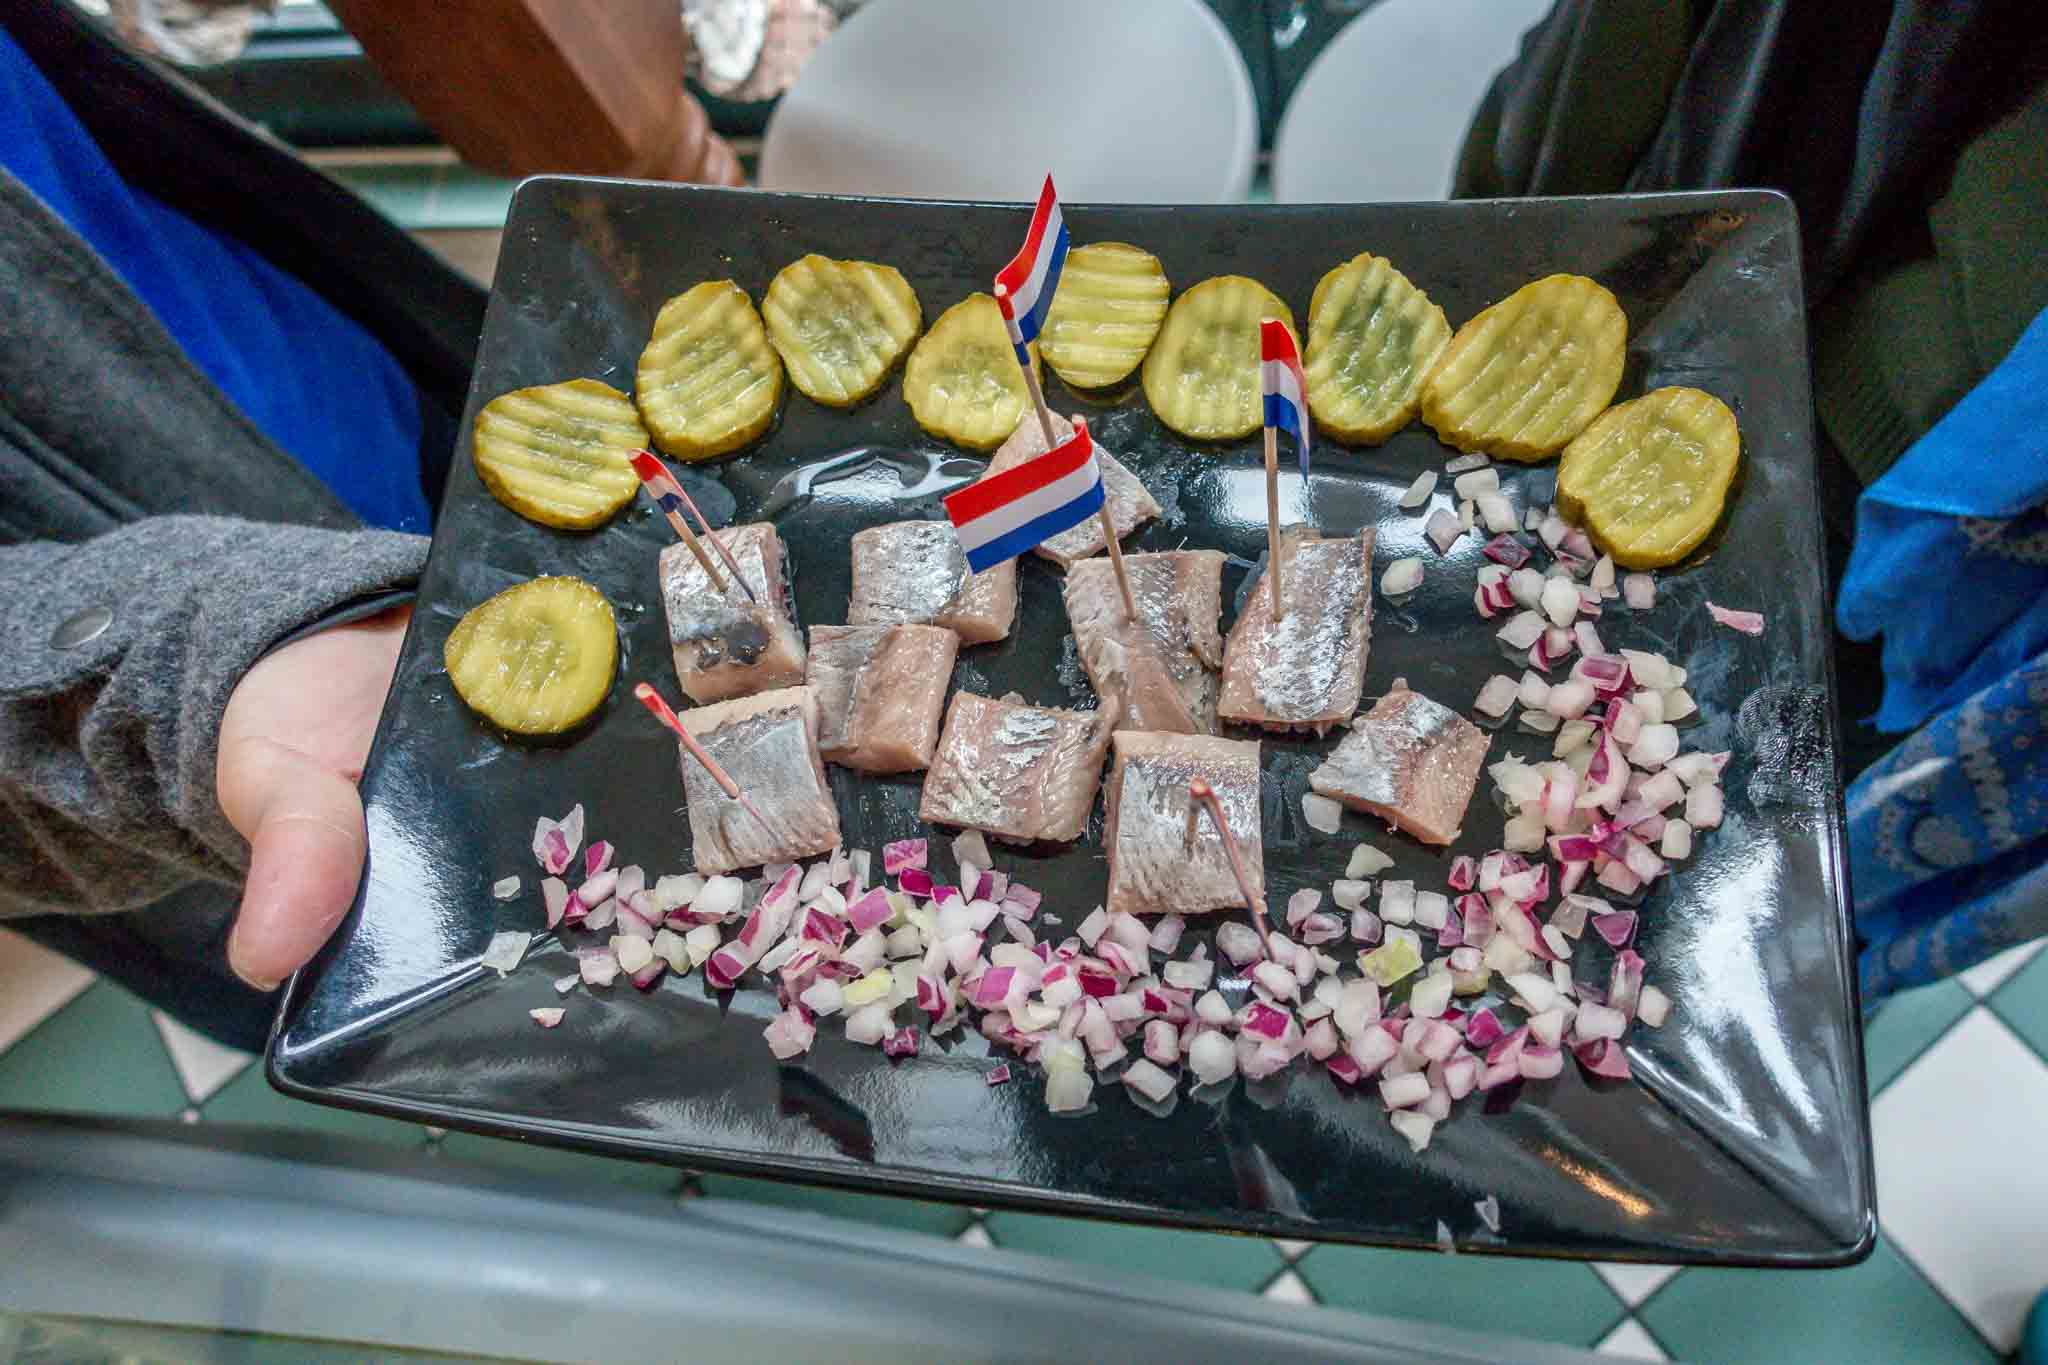 Platter of pickled herring, red onion, and pickles